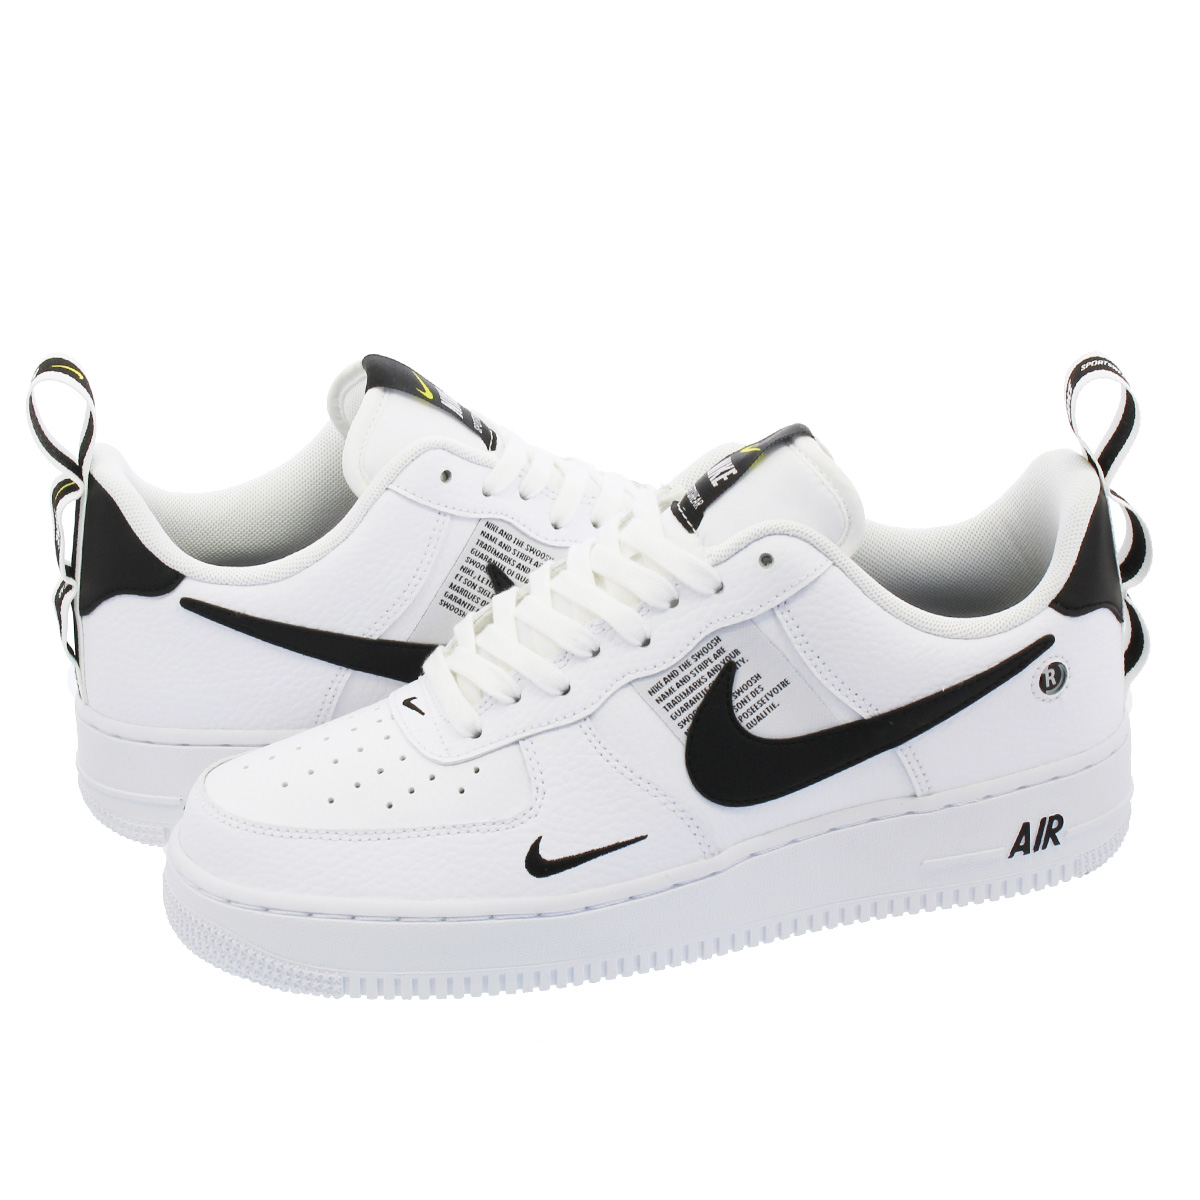 best website 8ec0c 1c6cf NIKE AIR FORCE 1  07 LV8 UTILITY Nike air force 1  07 LV8 utility  WHITE WHITE BLACK TOUR YELLOW aj7747-100